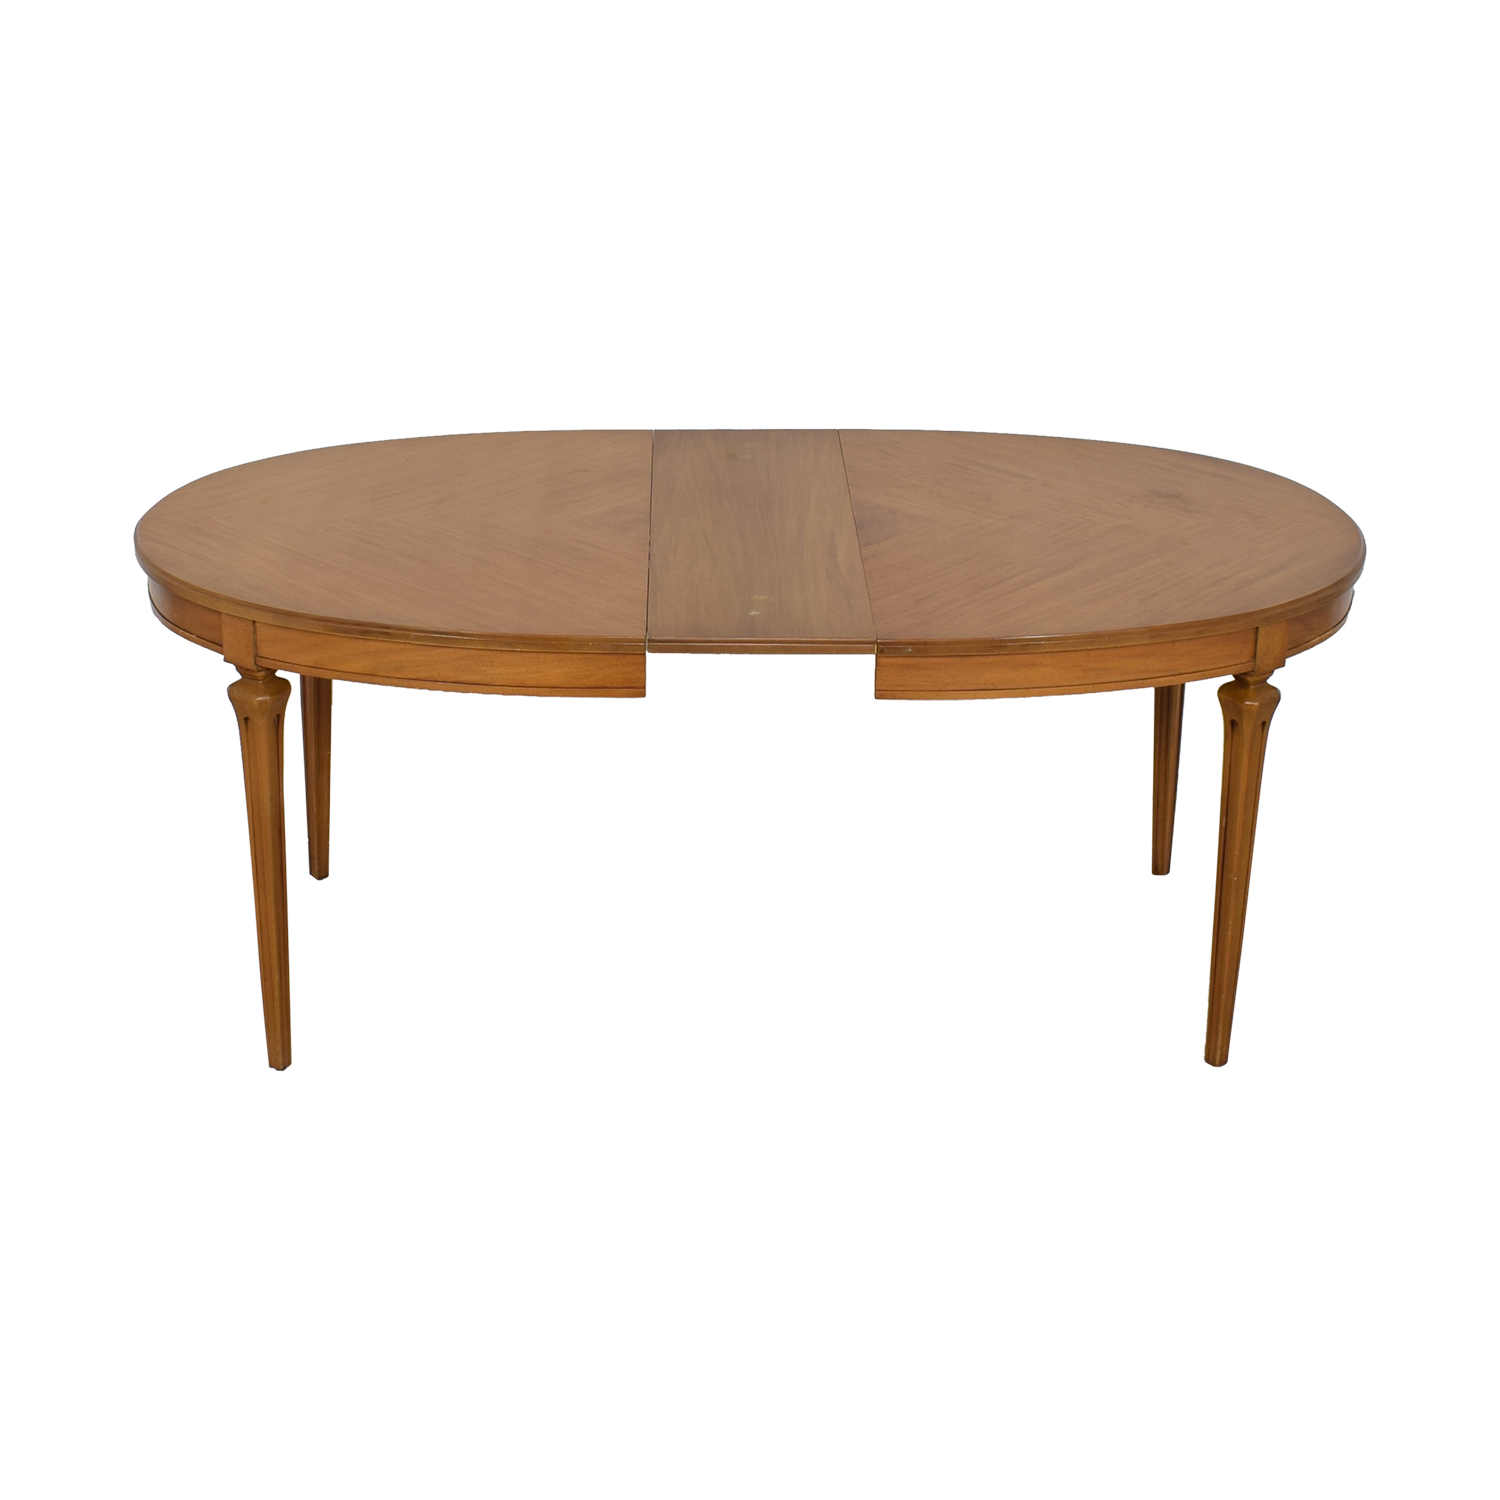 Extendable Oval Dining Table second hand